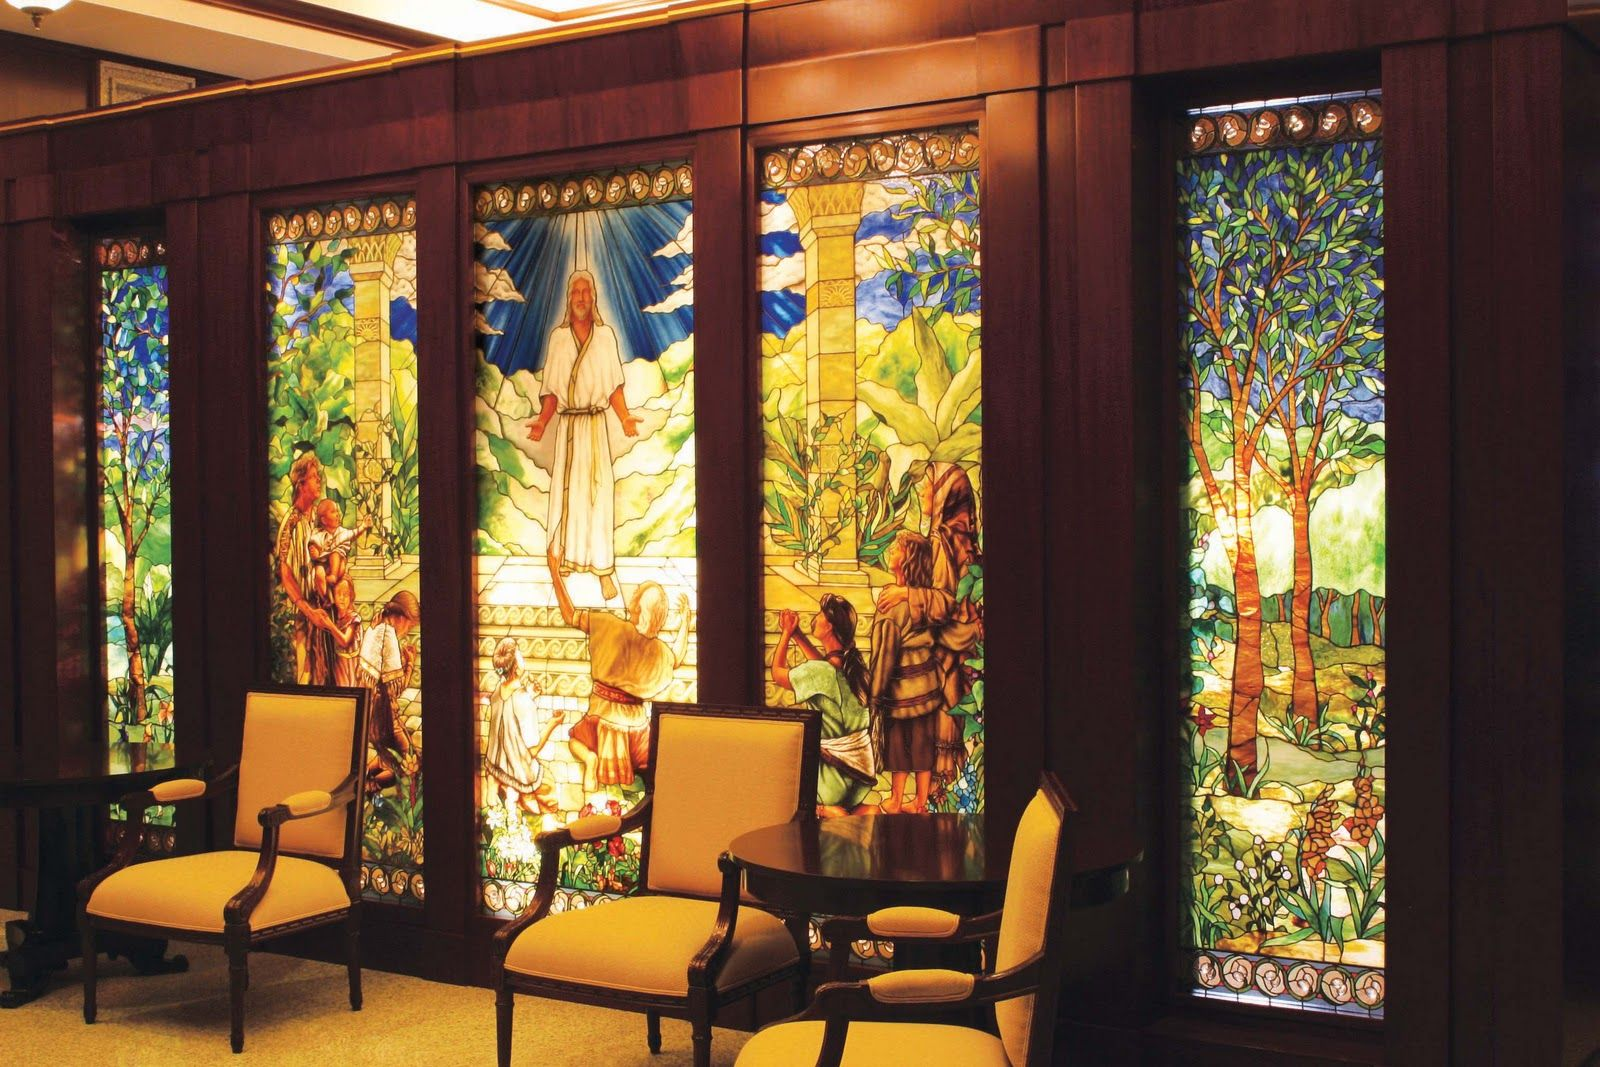 Stained Glass Mural Inside The Sao Paulo Brazil Lds Temple Mormonfavorites Com I Cannot Believe How Many L Mormon Temples Lds Temples Lds Temple Pictures